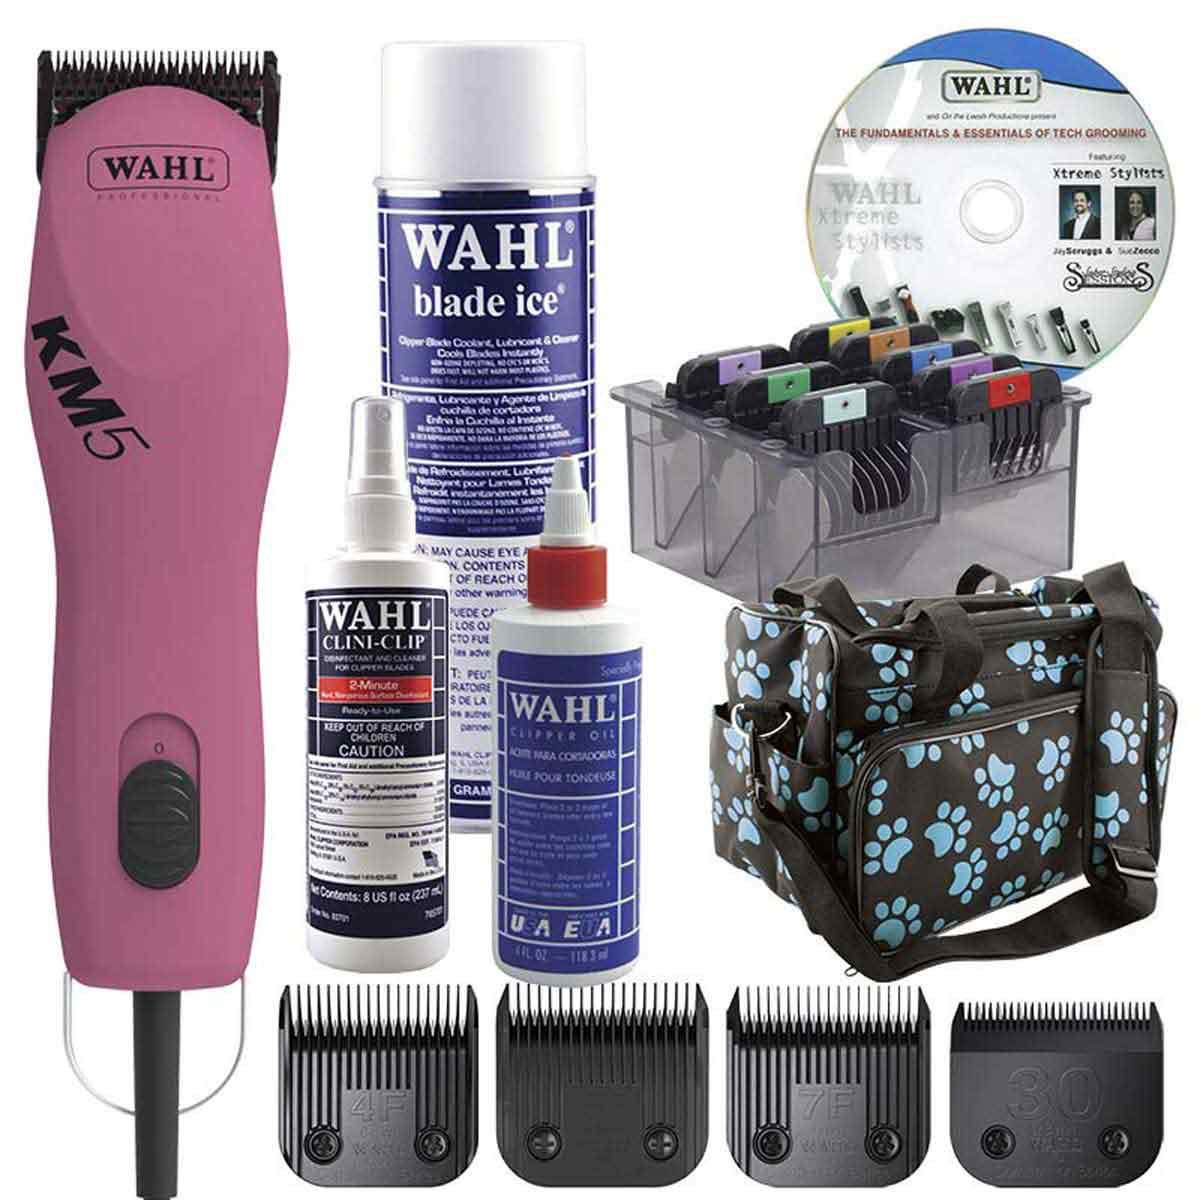 Cotton Candy Pink Wahl KM5 Grooming Starter Kit for Students